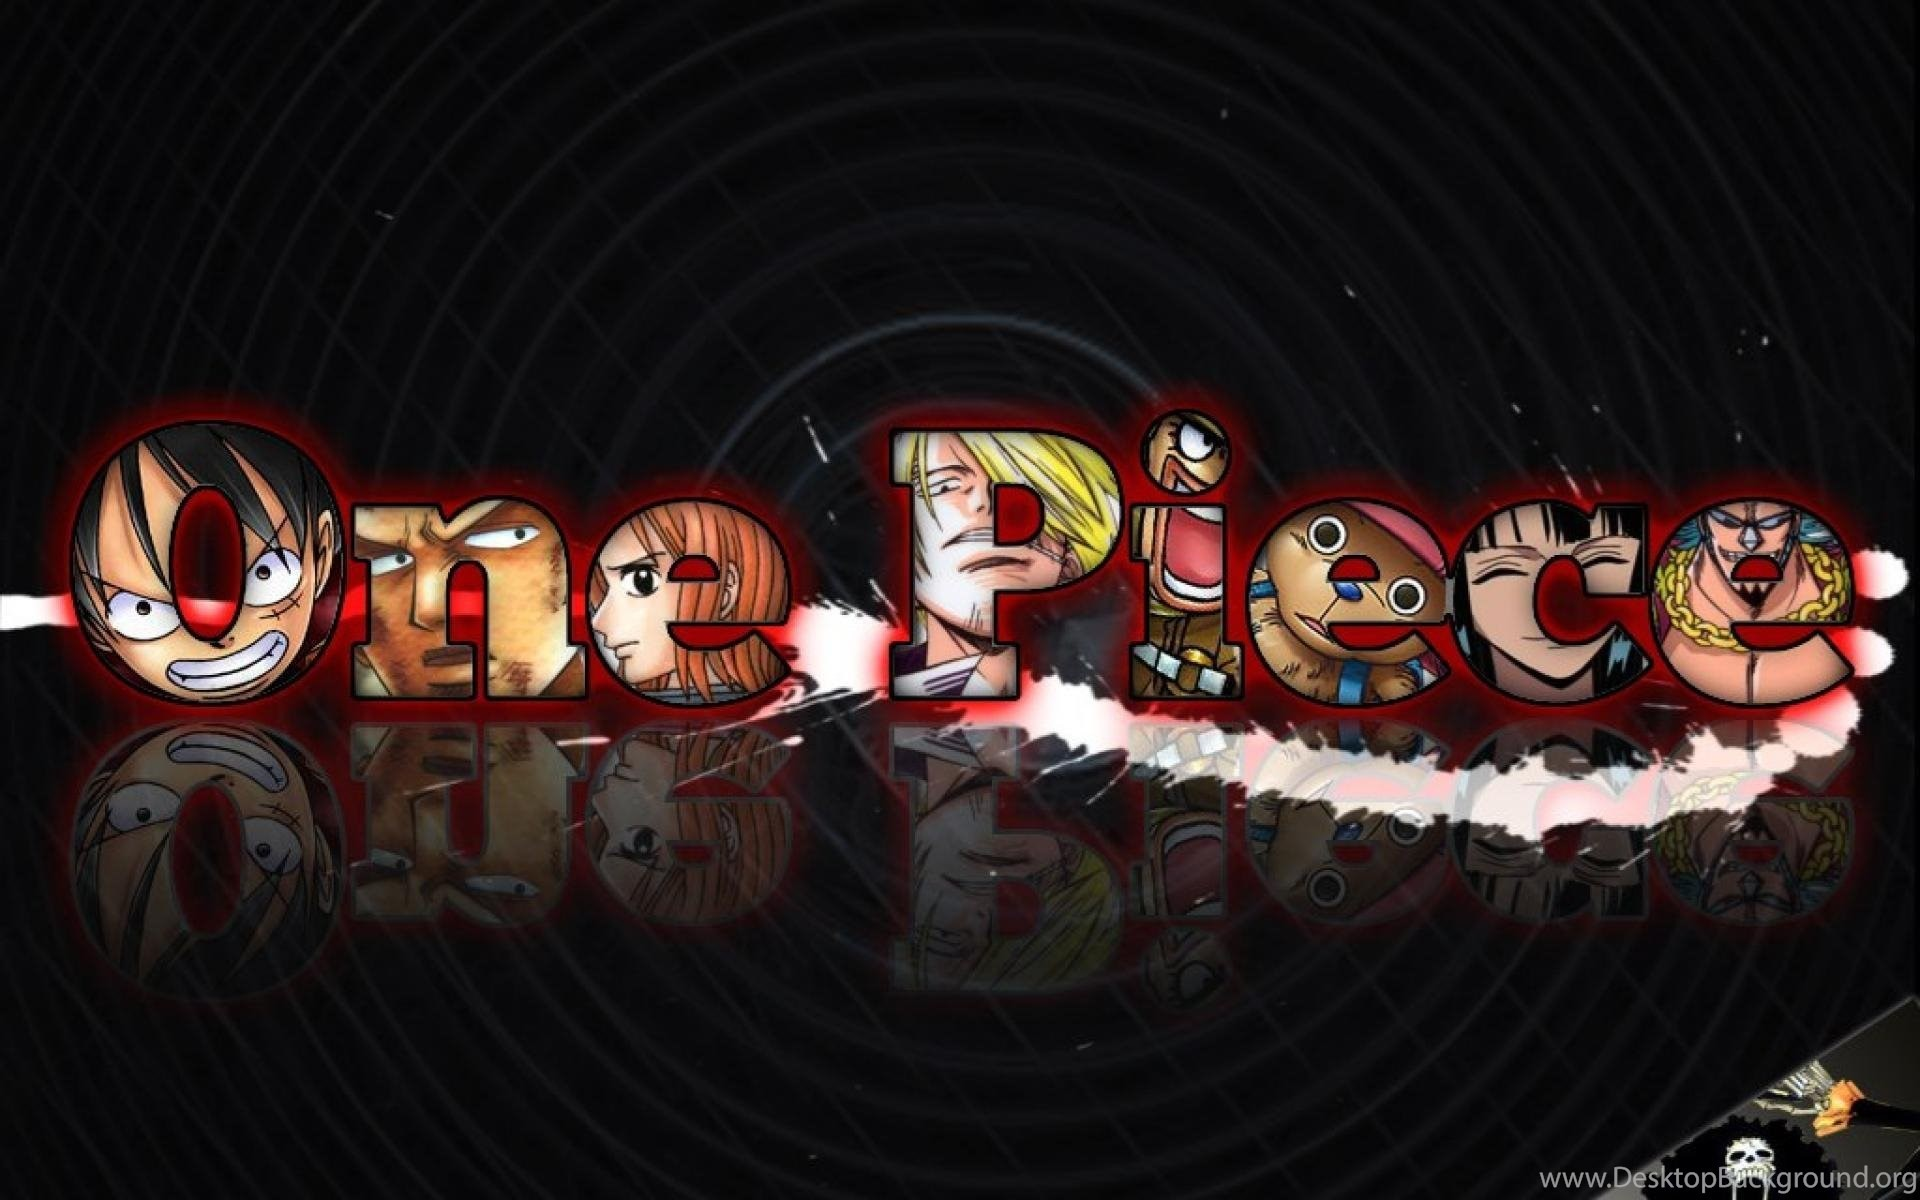 Supreme Wallpaper Iphone 5 One Piece Logo Wallpaper 65 Images